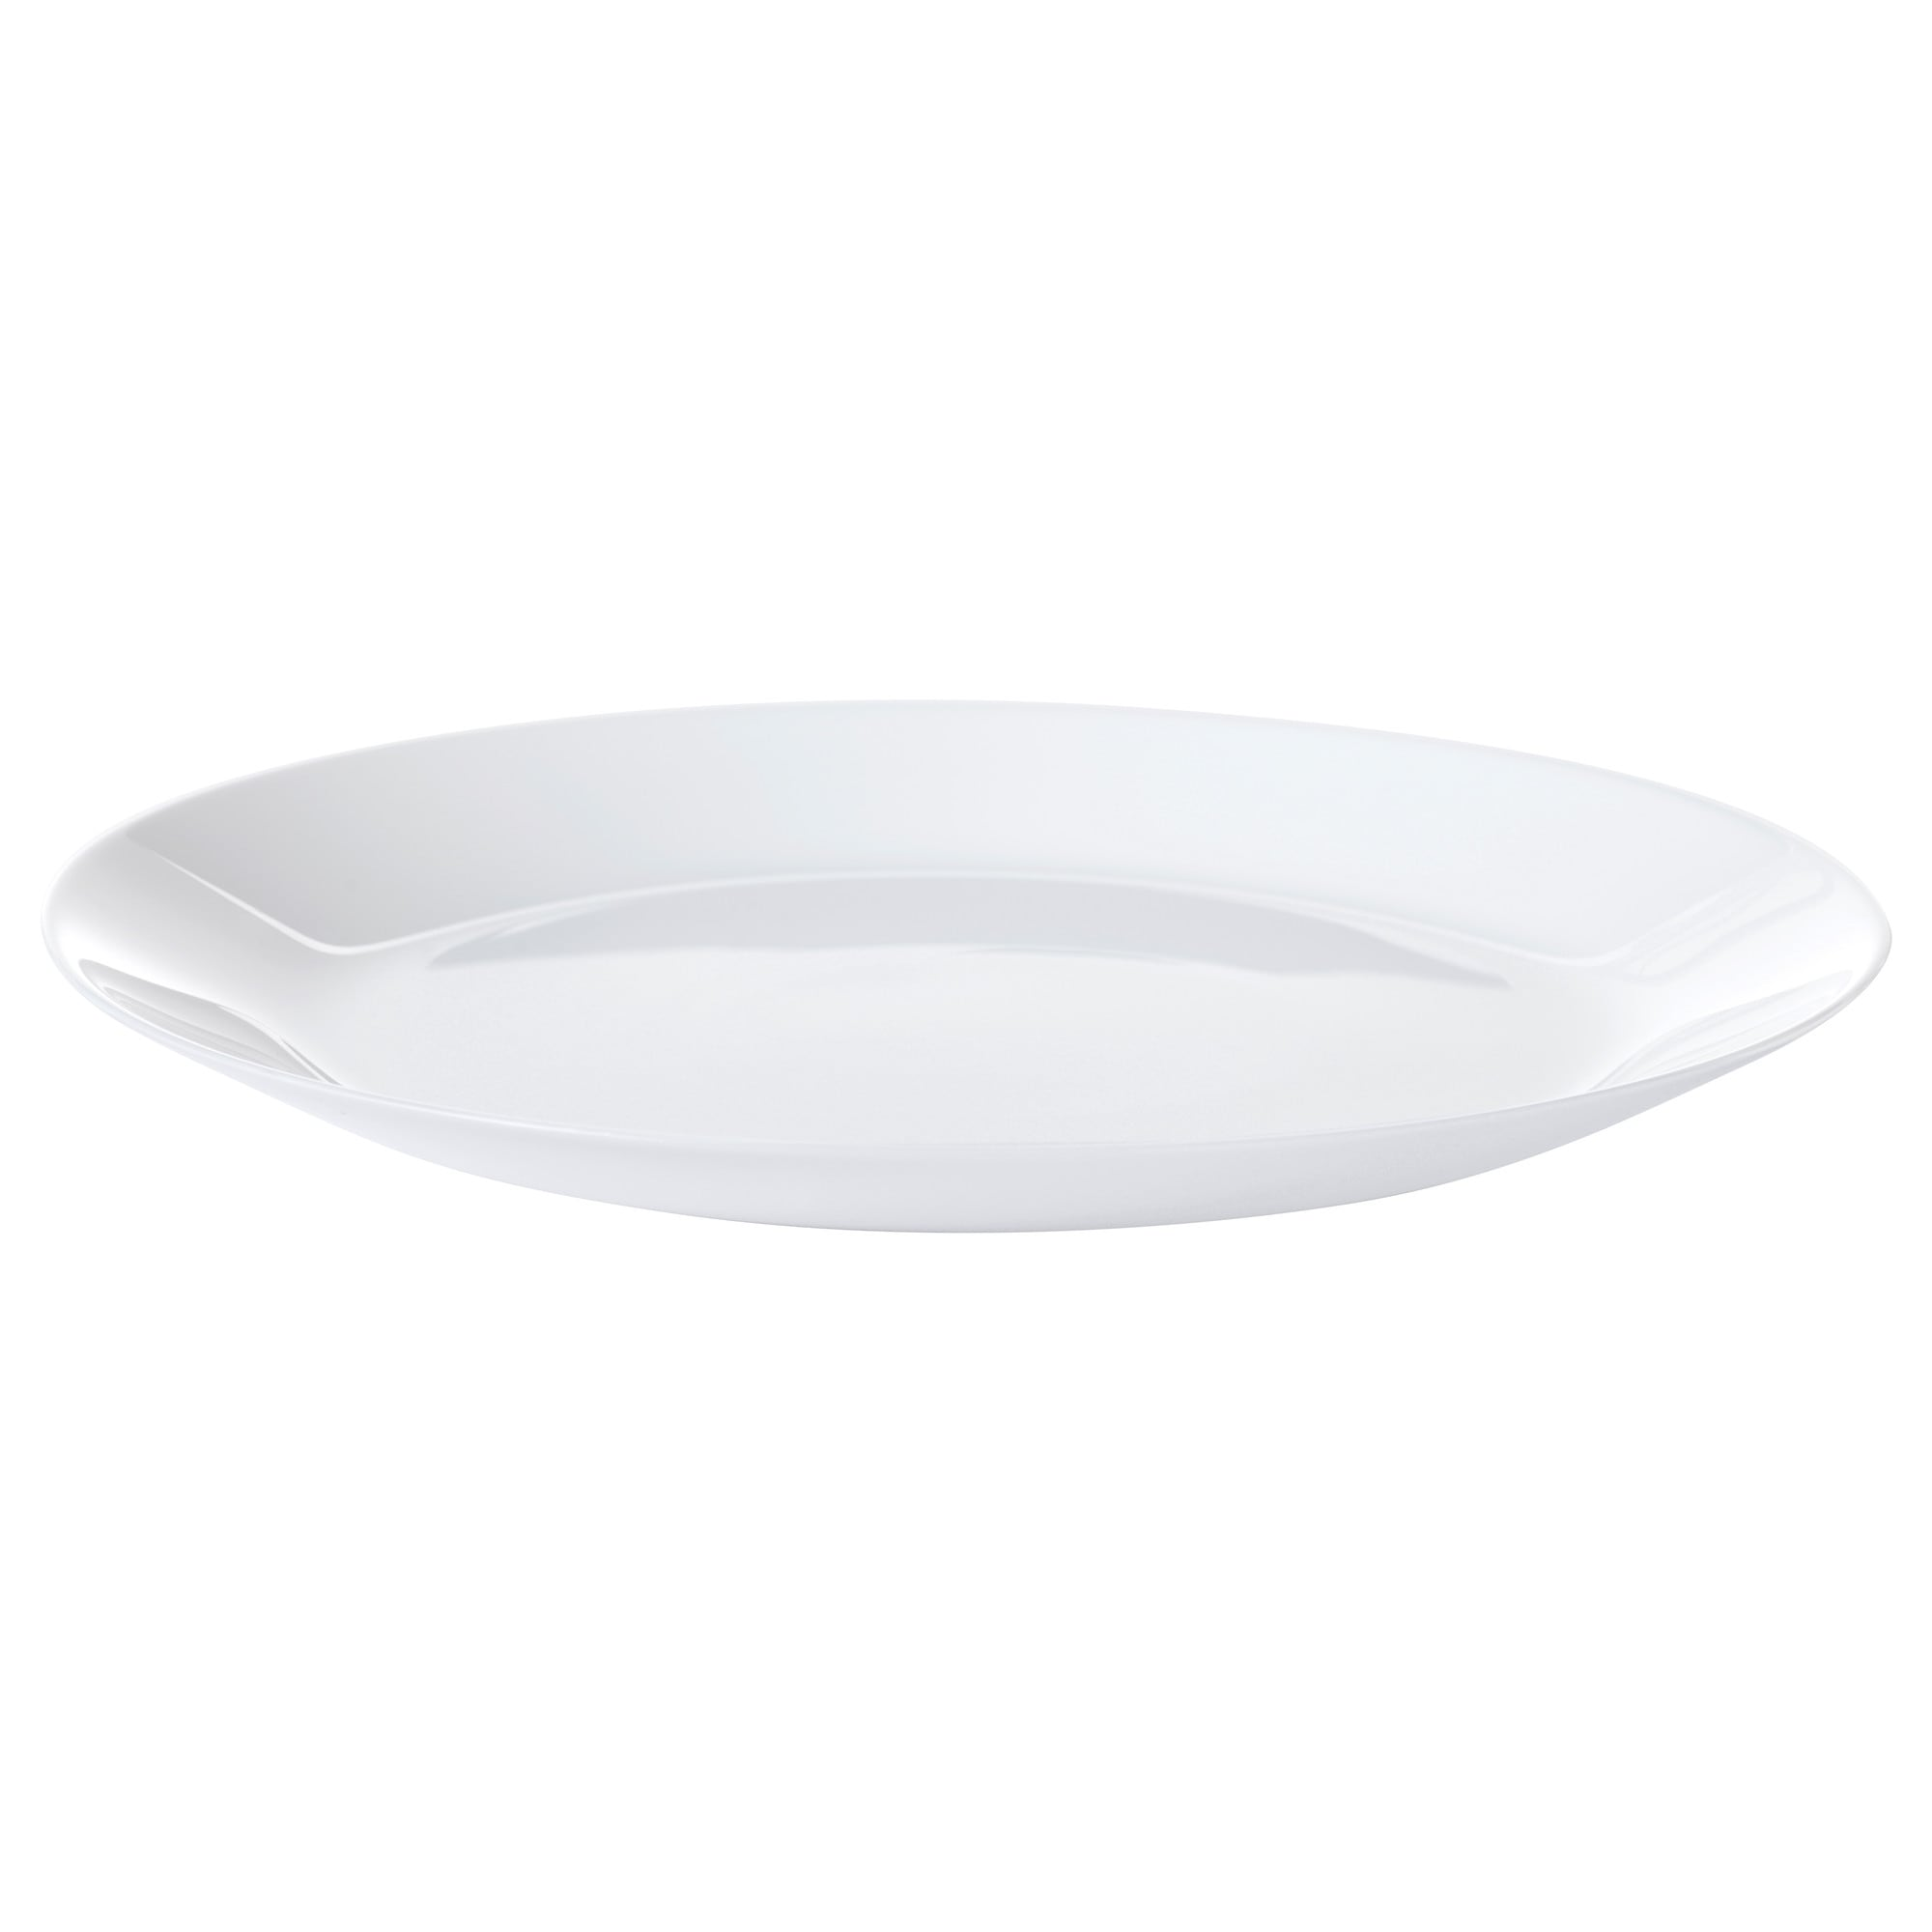 sc 1 st  Ikea : pictures of dinner plates - pezcame.com